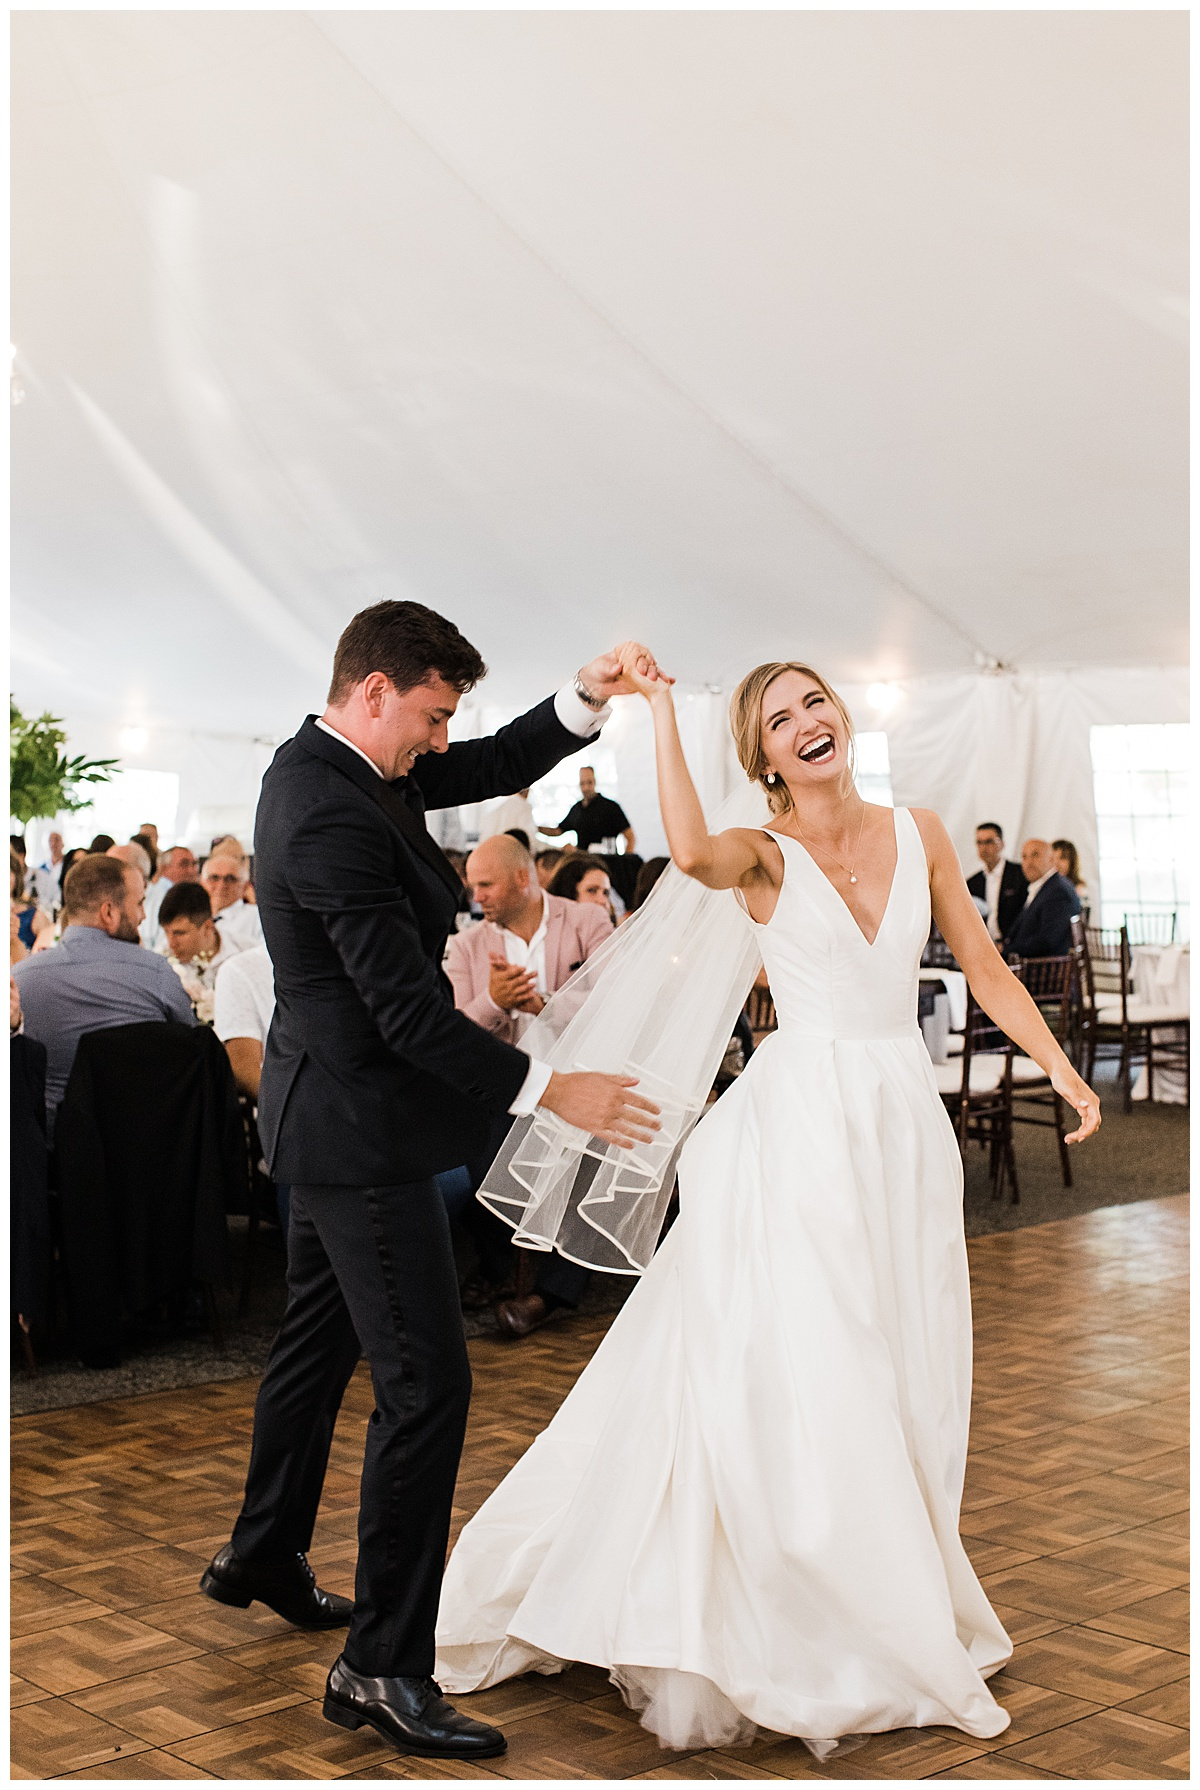 Bride and groom dancing and laughing on dance floor|Georgetown,  Ontario wedding| Toronto wedding photographer| 3photography